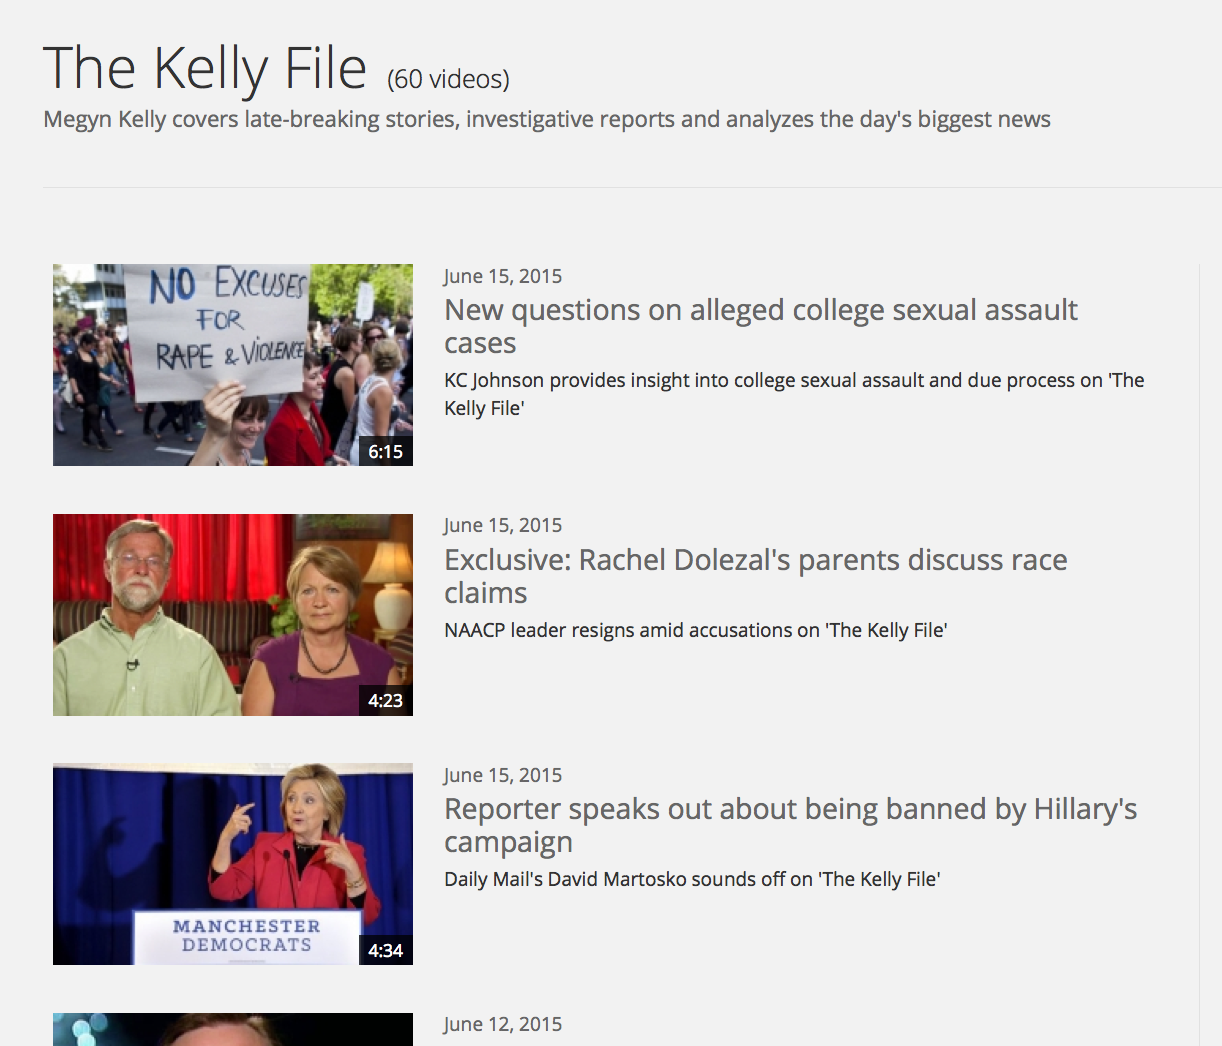 Kelly_File_videos.png